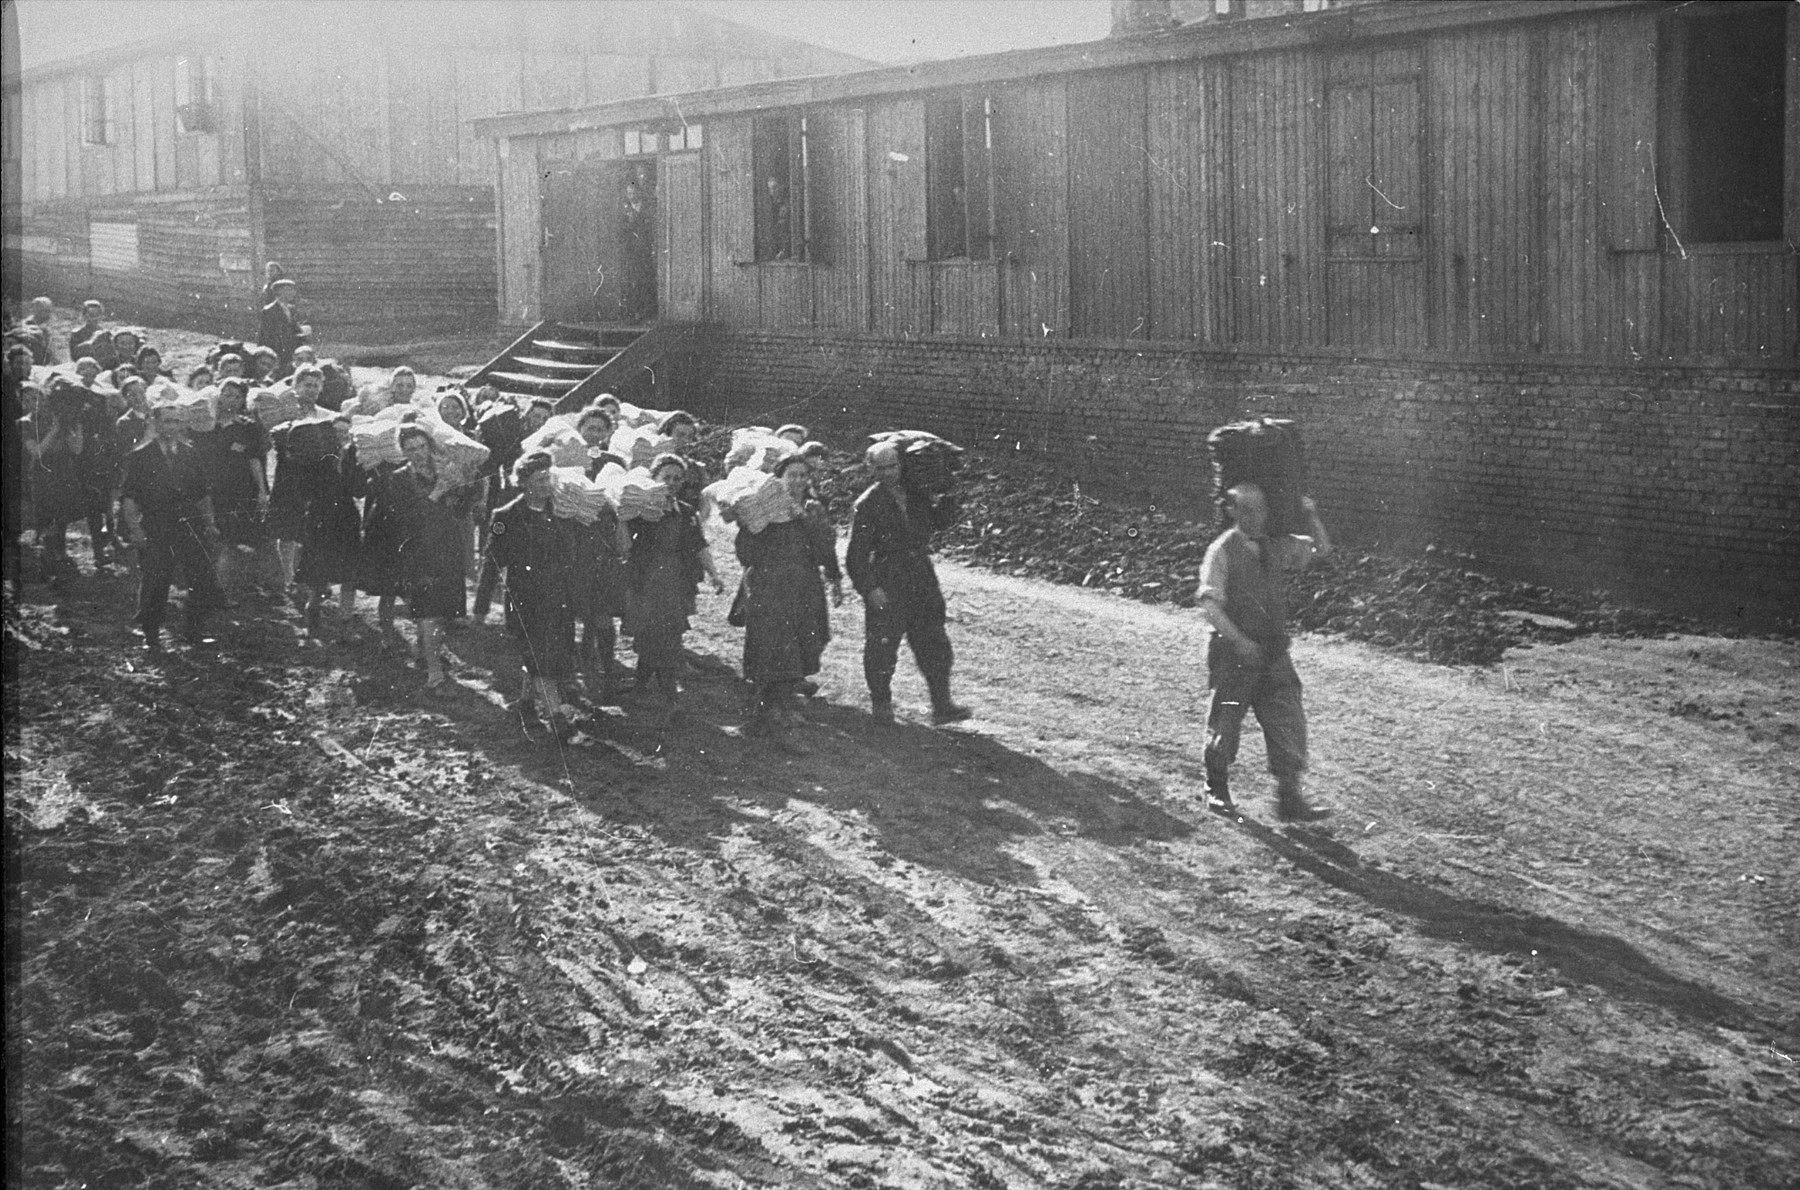 Jewish prisoners carry cloth to the Madritch factory.  The Madritch factory utilized concentration camp labor to produce uniforms for the German army.